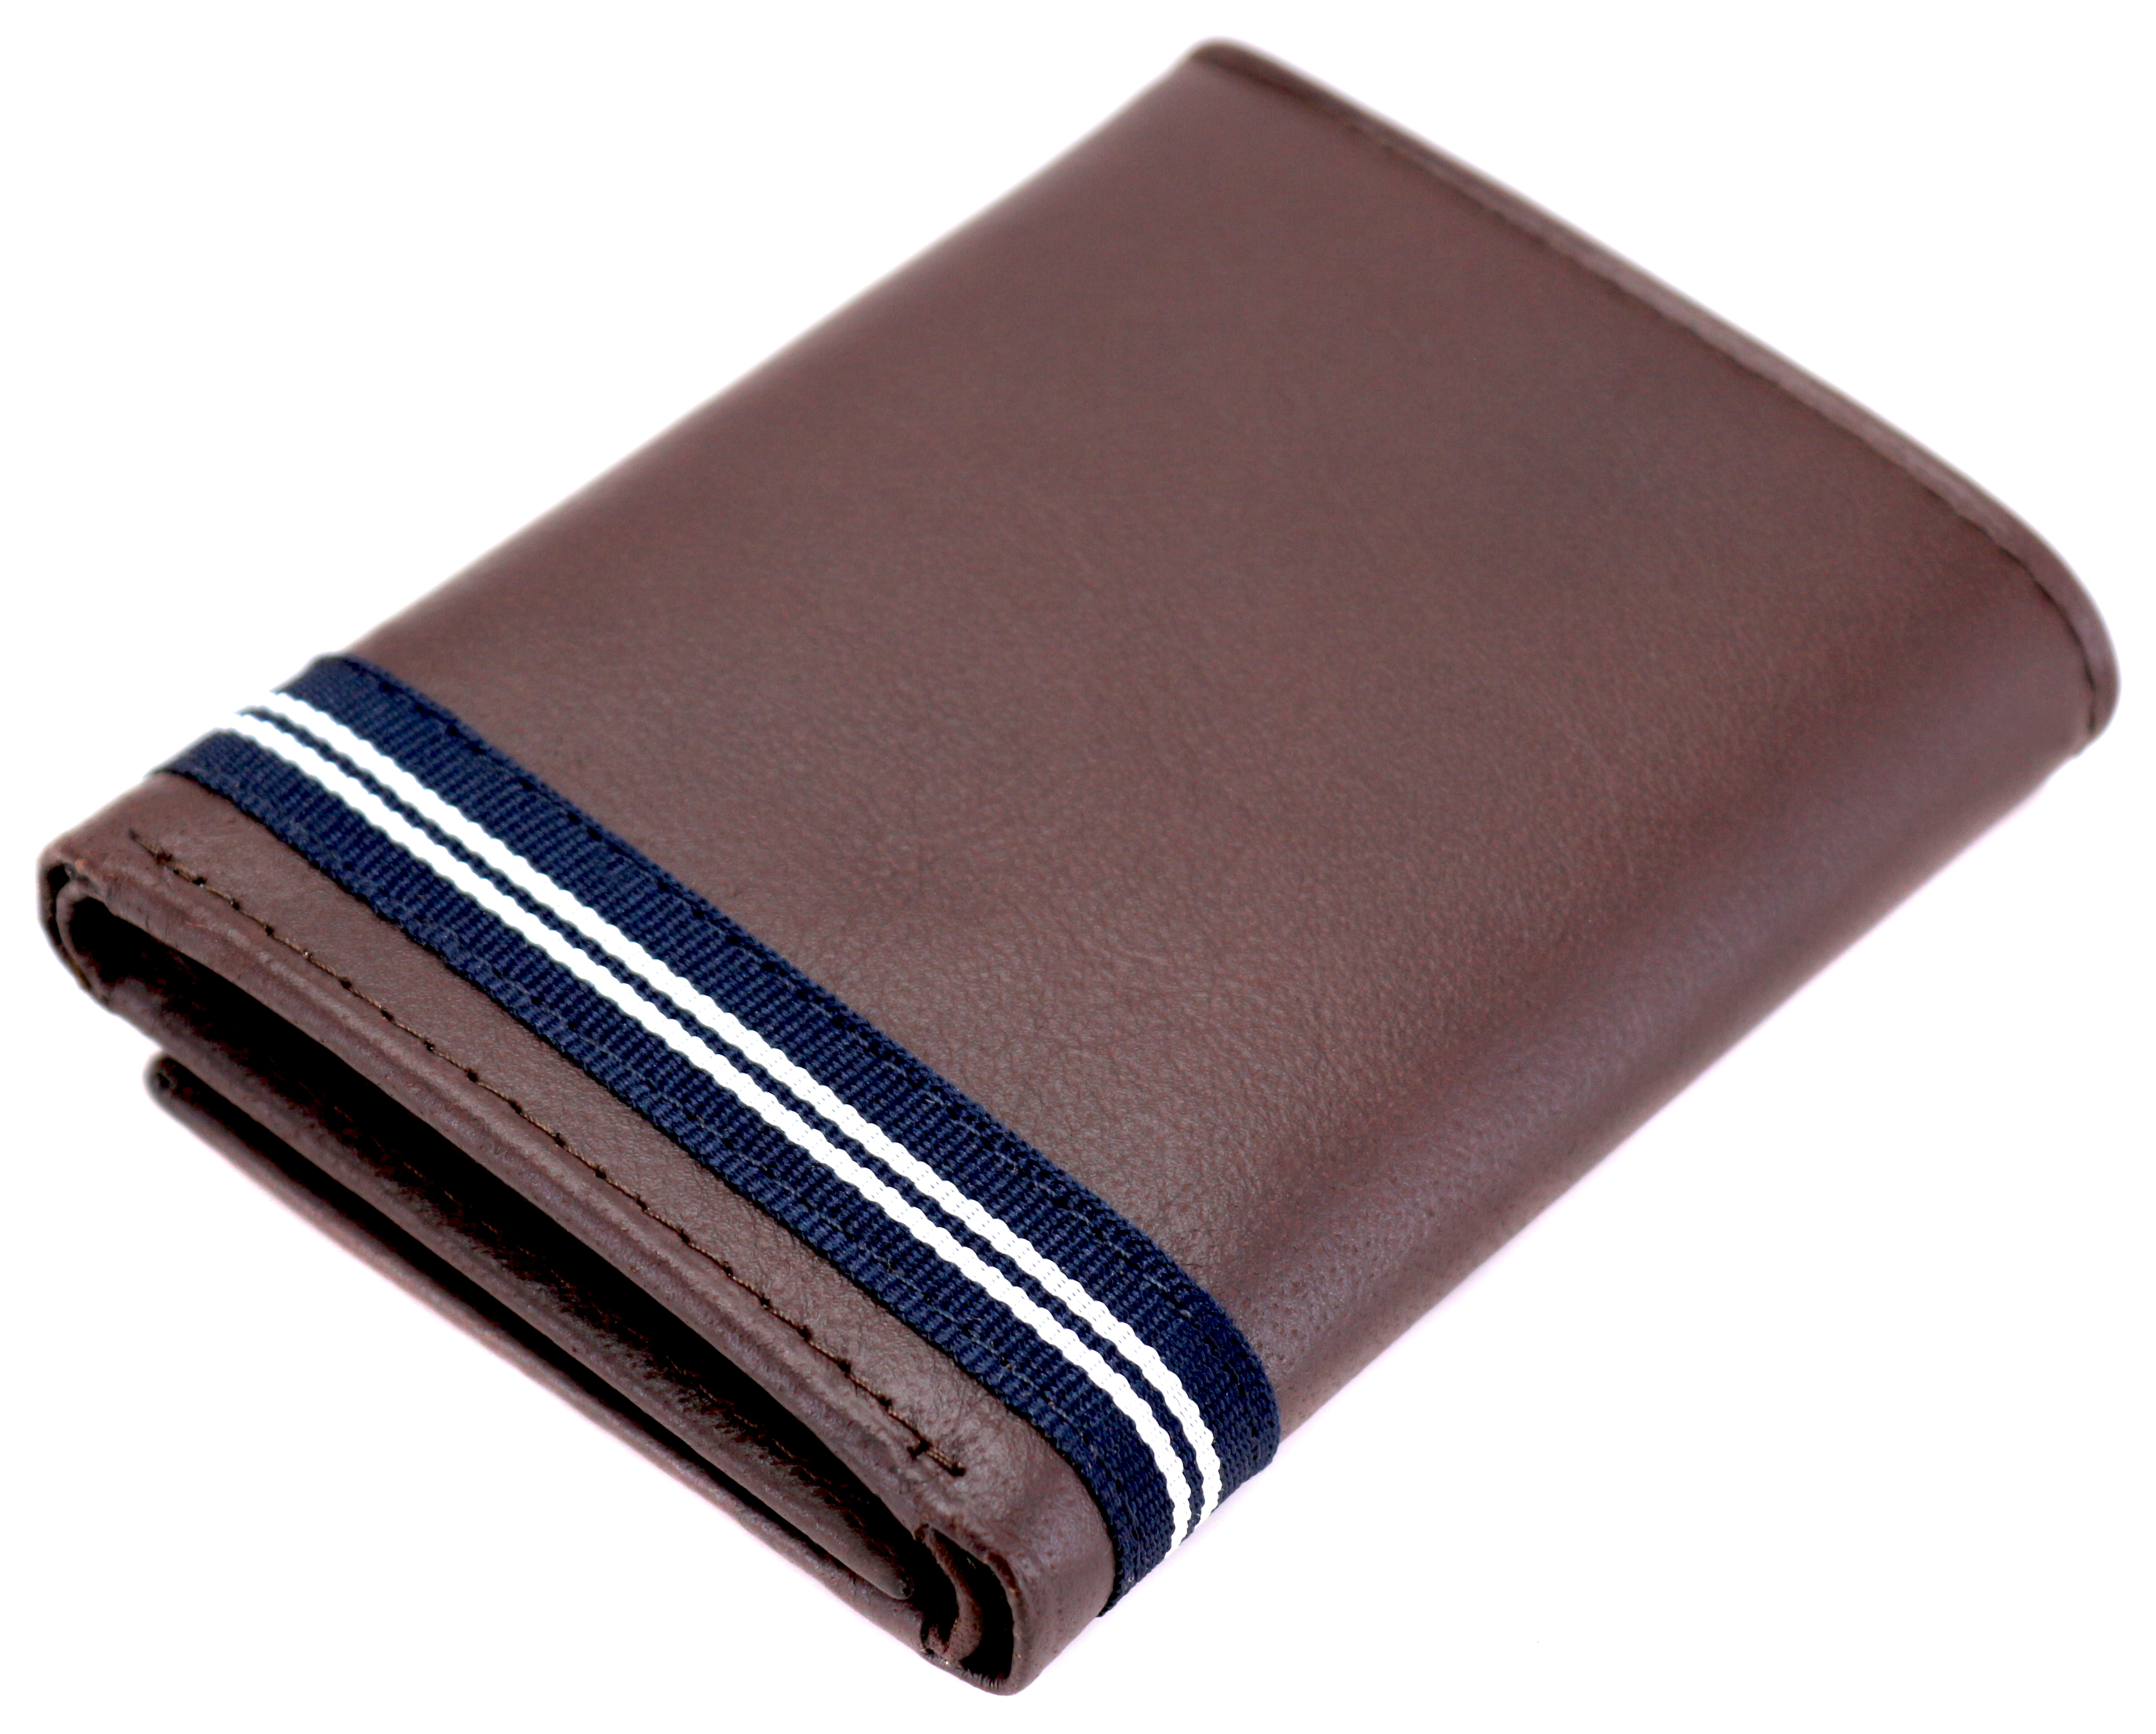 Nautica-Men-039-s-Genuine-Leather-Credit-Card-Id-Holder-Trifold-Wallet thumbnail 13